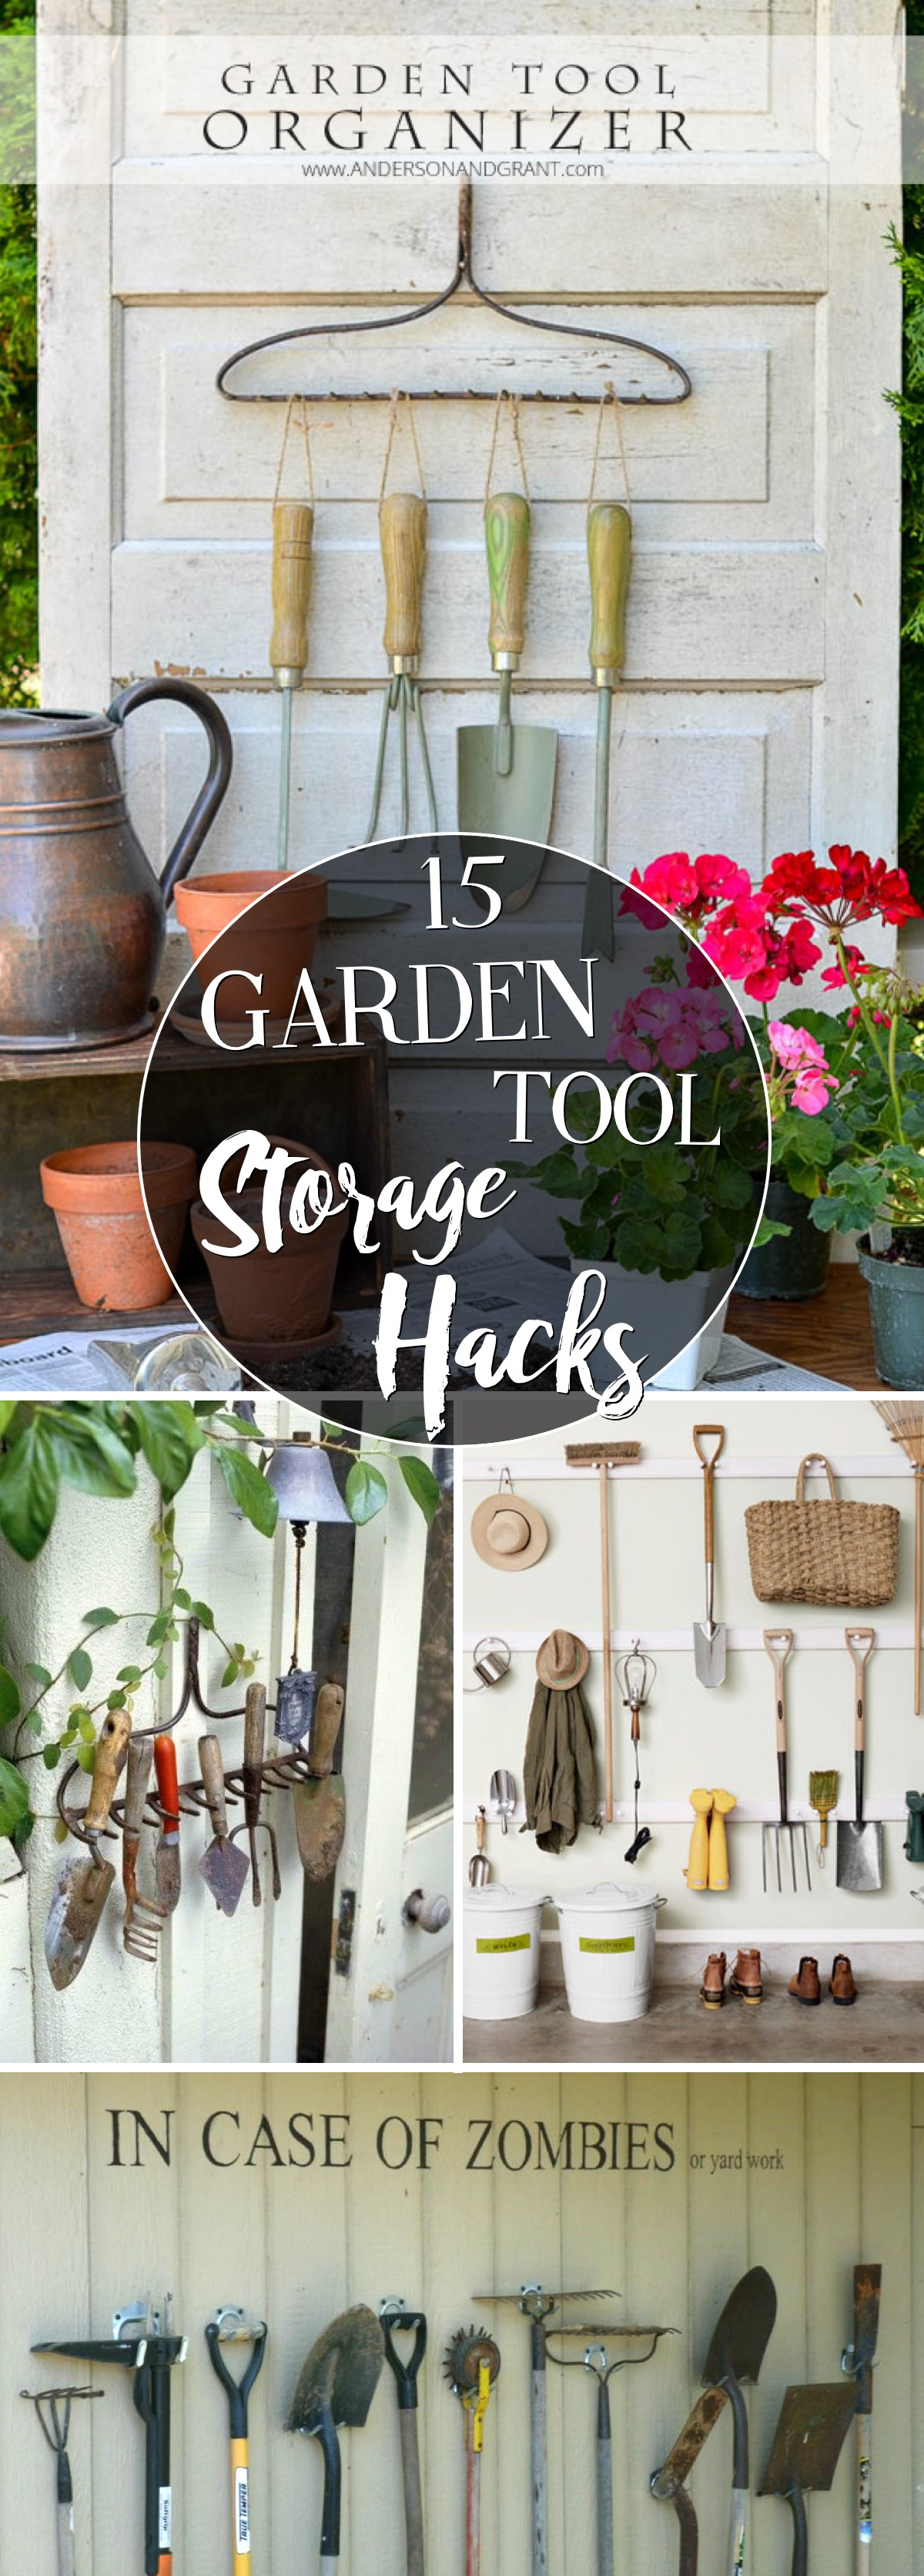 15 Garden Tool Storage Hacks Keeping your Love For Gardening Well-Organized!